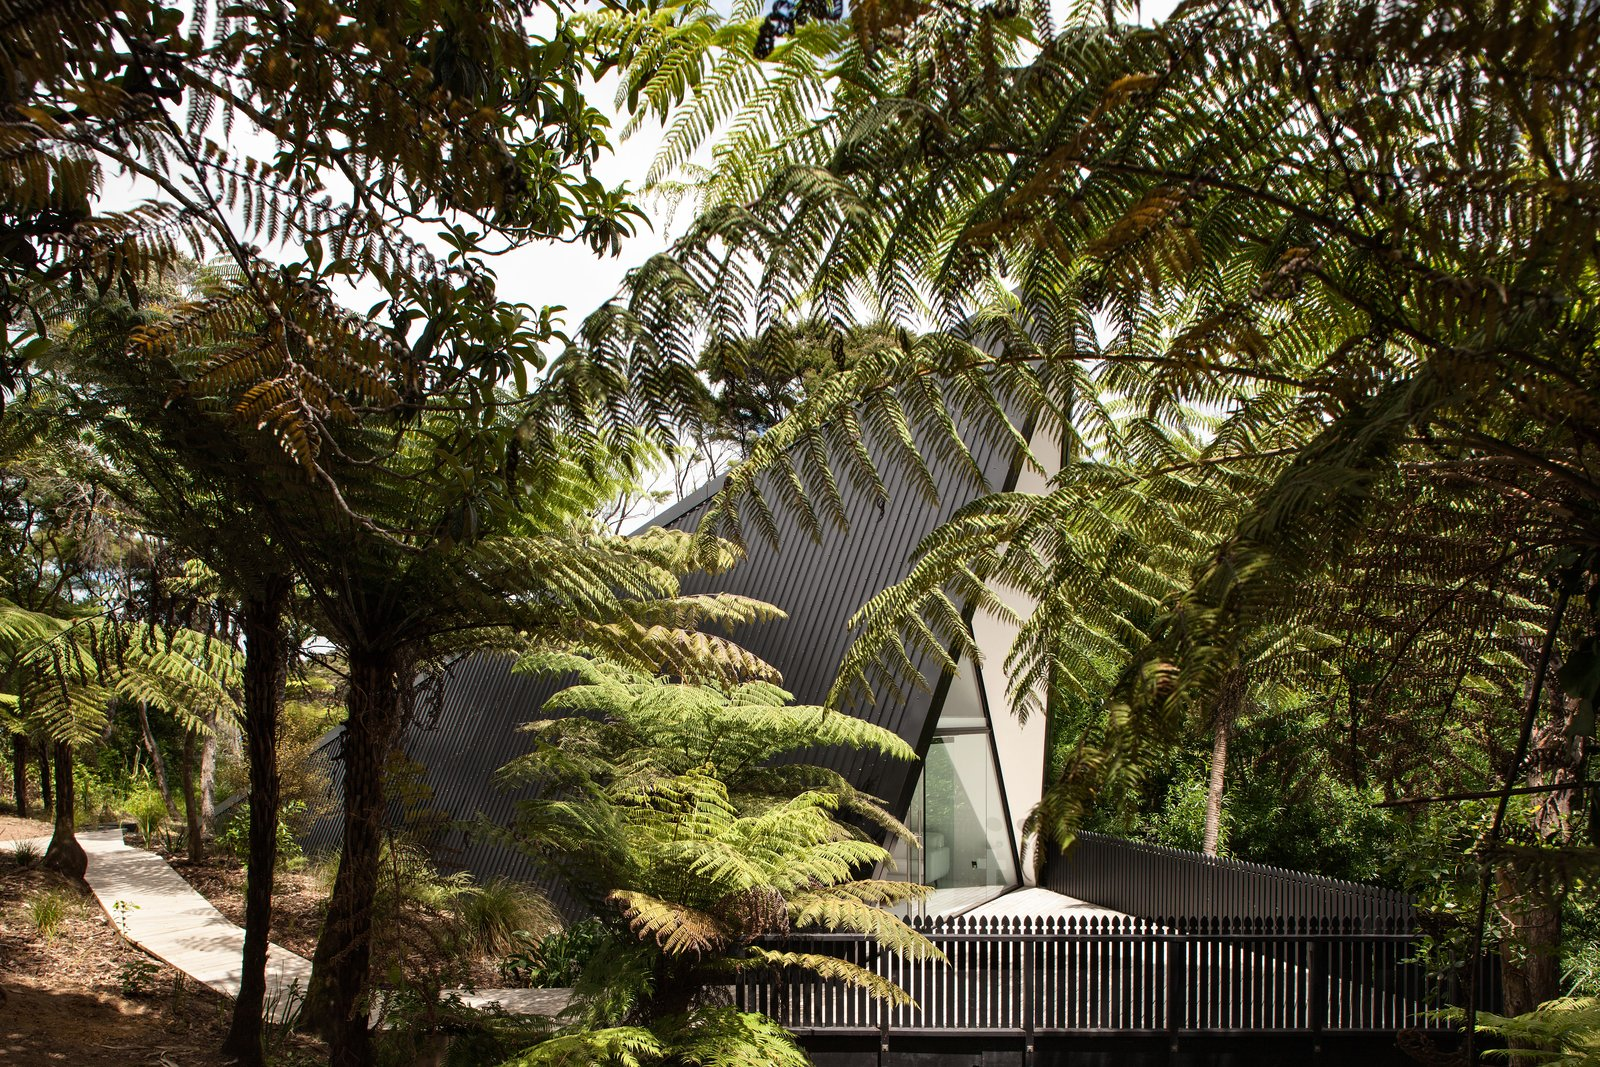 Trees, Shrubs, Front Yard, Small Patio, Porch, Deck, Vertical Fences, Wall, Wood Fences, Wall, Exterior, House Building Type, Metal Siding Material, Metal Roof Material, and Cabin Building Type On Waiheke Island near Auckland, New Zealand, the Tent House sits among wetlands on a patch of undeveloped land. It captures the back-to-basics simplicity of camping, thanks to architect Chris Tate.   Though he originally created the cabin to be a personal retreat/studio, Tate ended up experimenting with the design in order to challenge conventional expectations of what makes an ideal weekend escape. Now available for short-term rental, the one-bedroom, one-bathroom, 753-square-foot home includes a sleeping area on the mezzanine, a fully functional kitchen, an open-plan living area, and a front deck designed to  Photo 1 of 8 in Stay in a Tent-Inspired A-Frame Cabin in the New Zealand Rain Forest